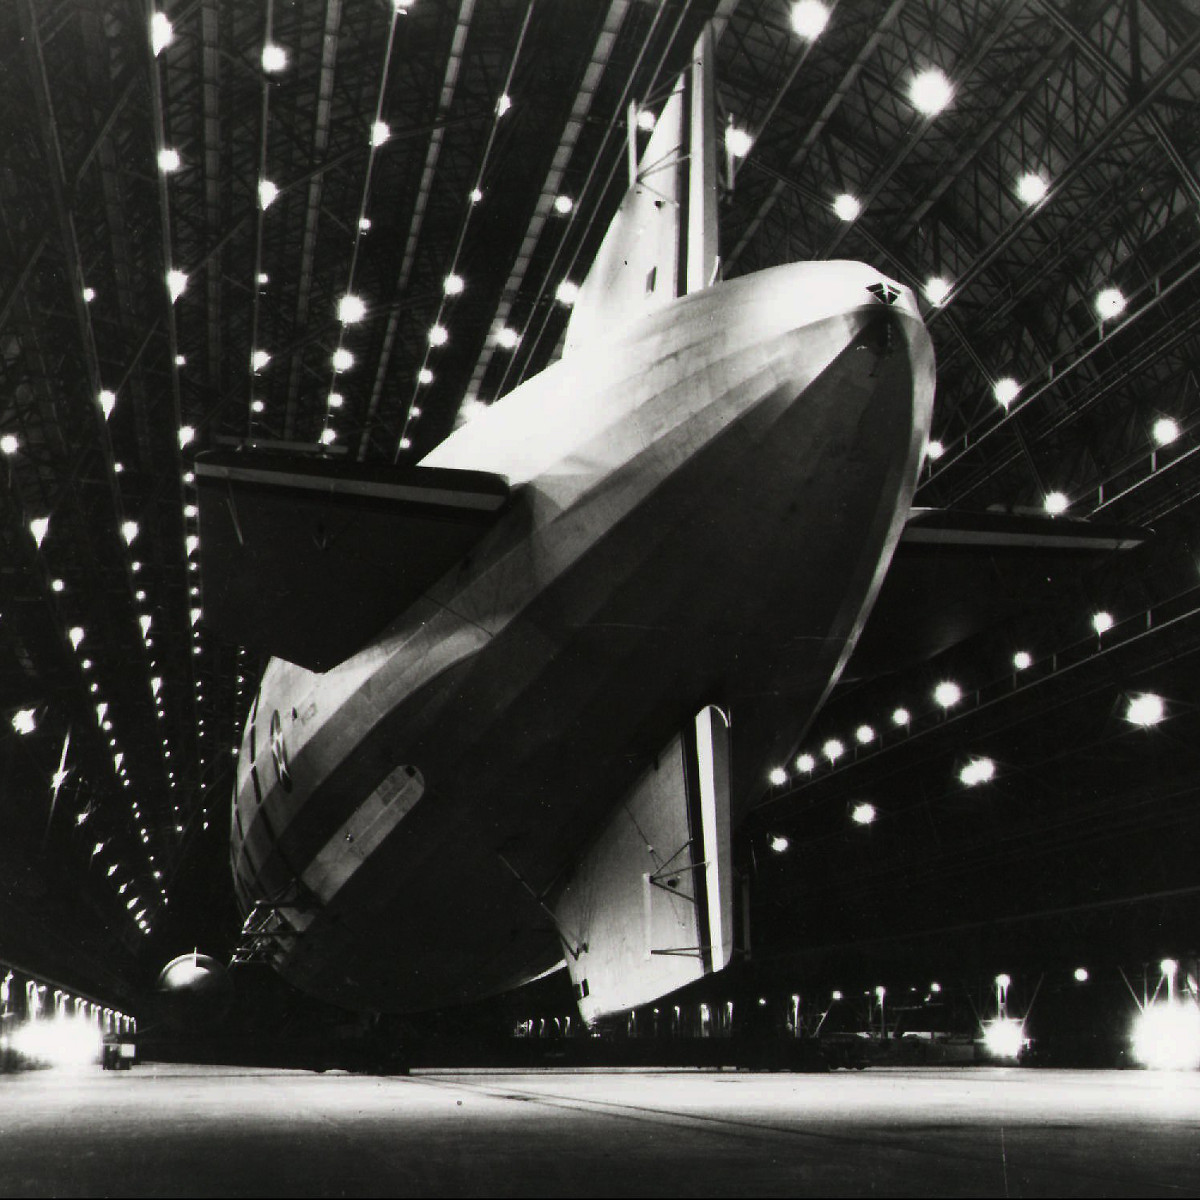 In this photo provided by the U.S. navy, the airship USS Macon is moored at Hangar One at Moffett Federal Airfield near Mountain View, Calif. The date is unknown.